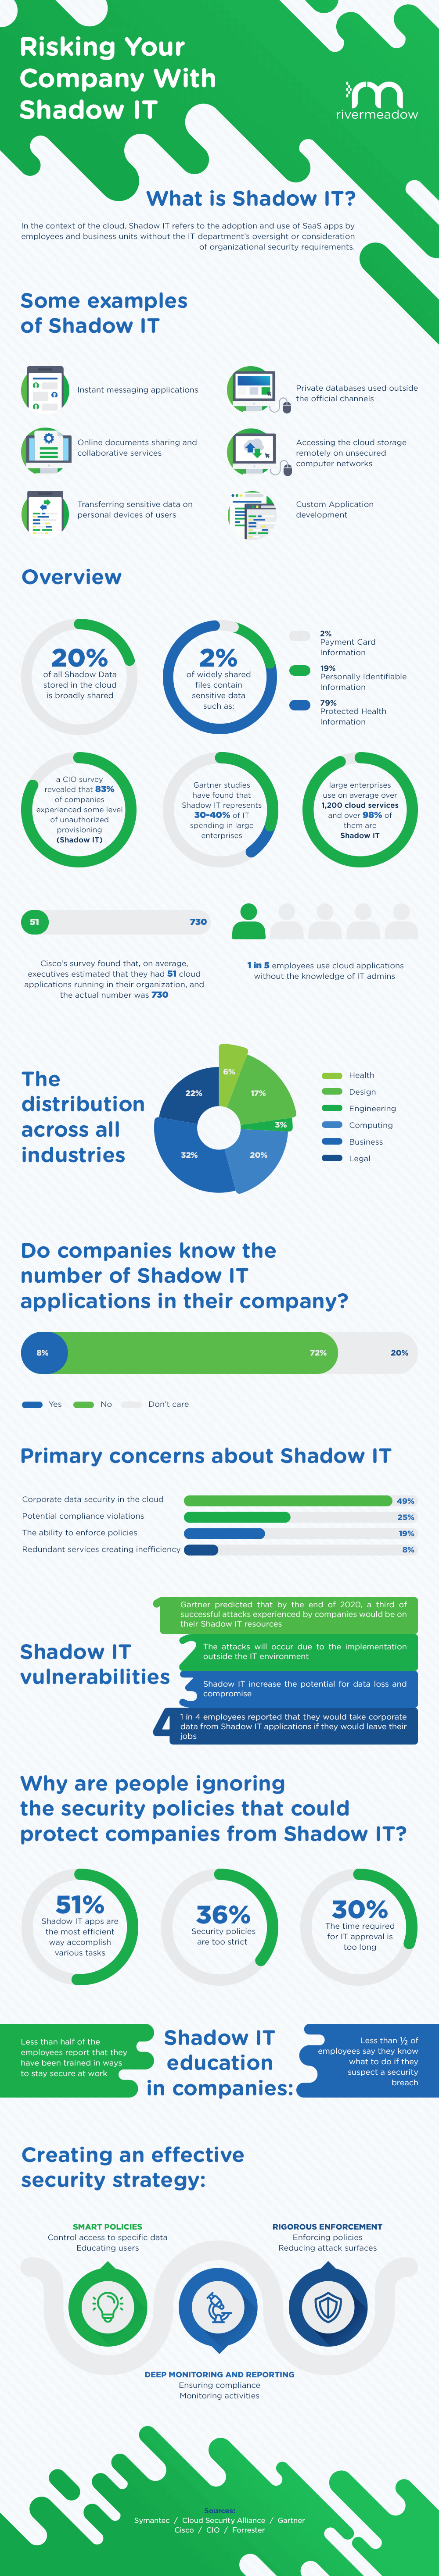 The Cloud and the Impact of Shadow IT